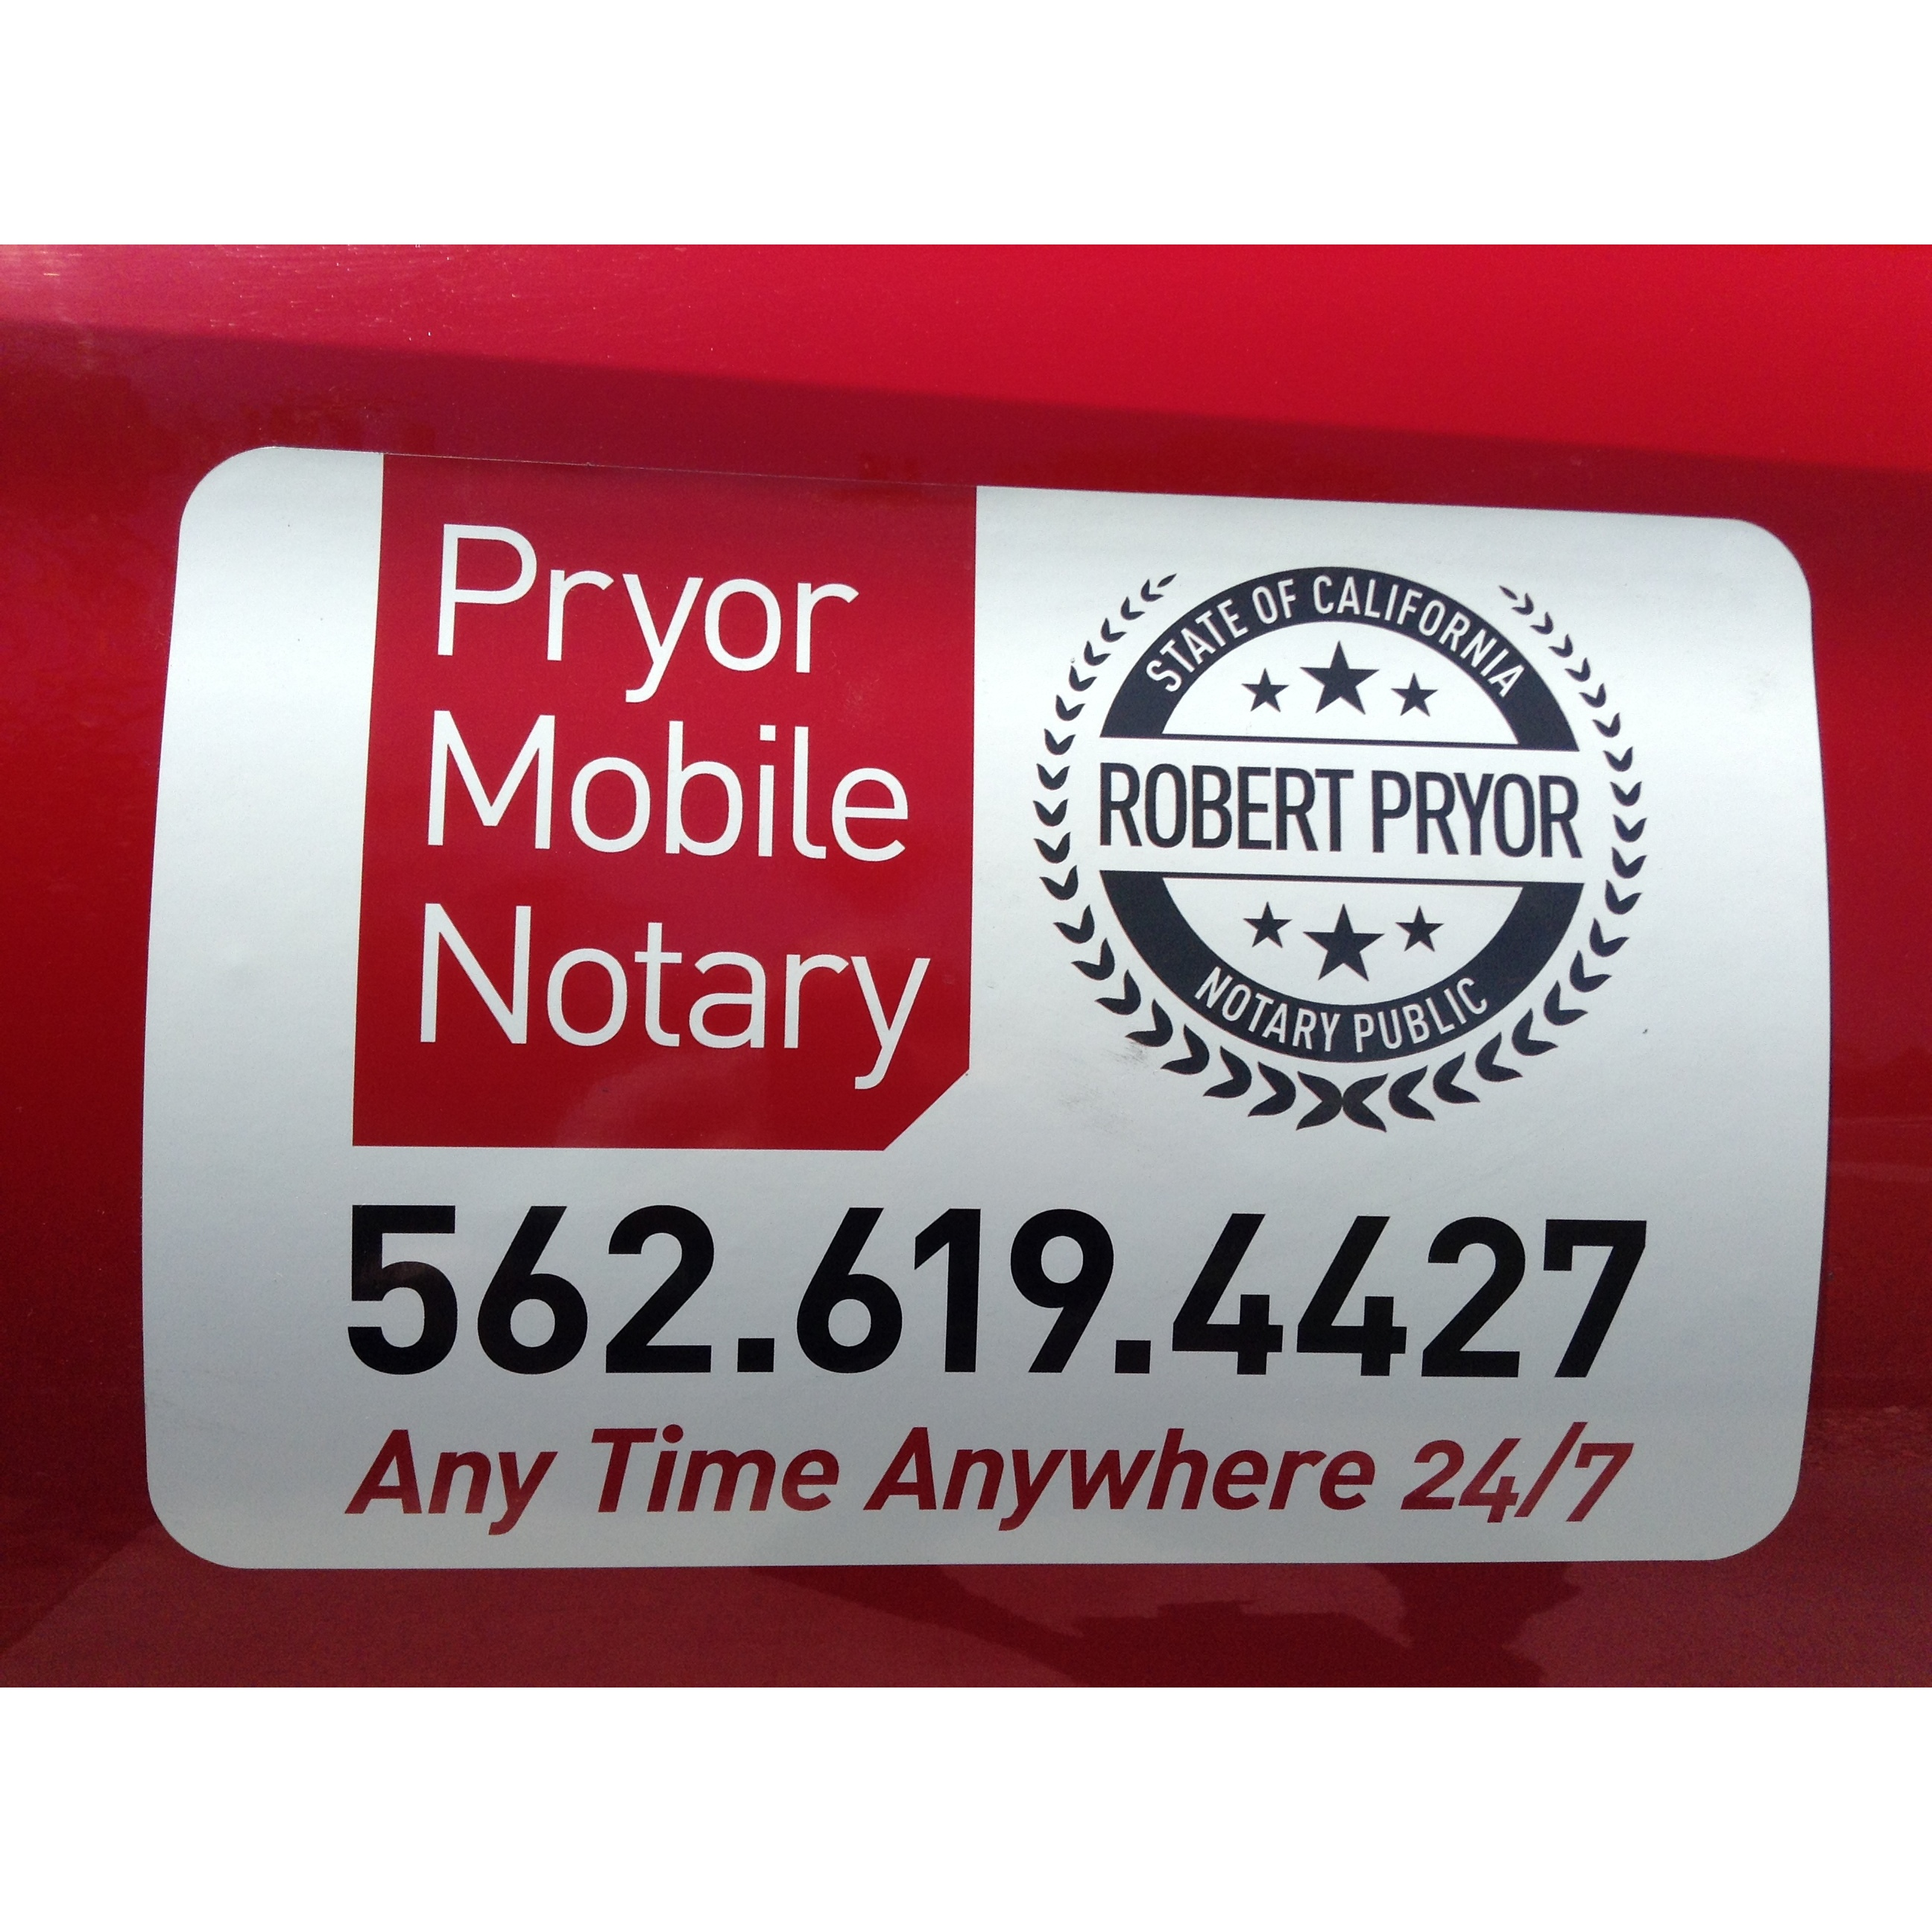 Robert Pryor Mobile Notary Public - Downey, CA 90242 - (562)619-4427 | ShowMeLocal.com